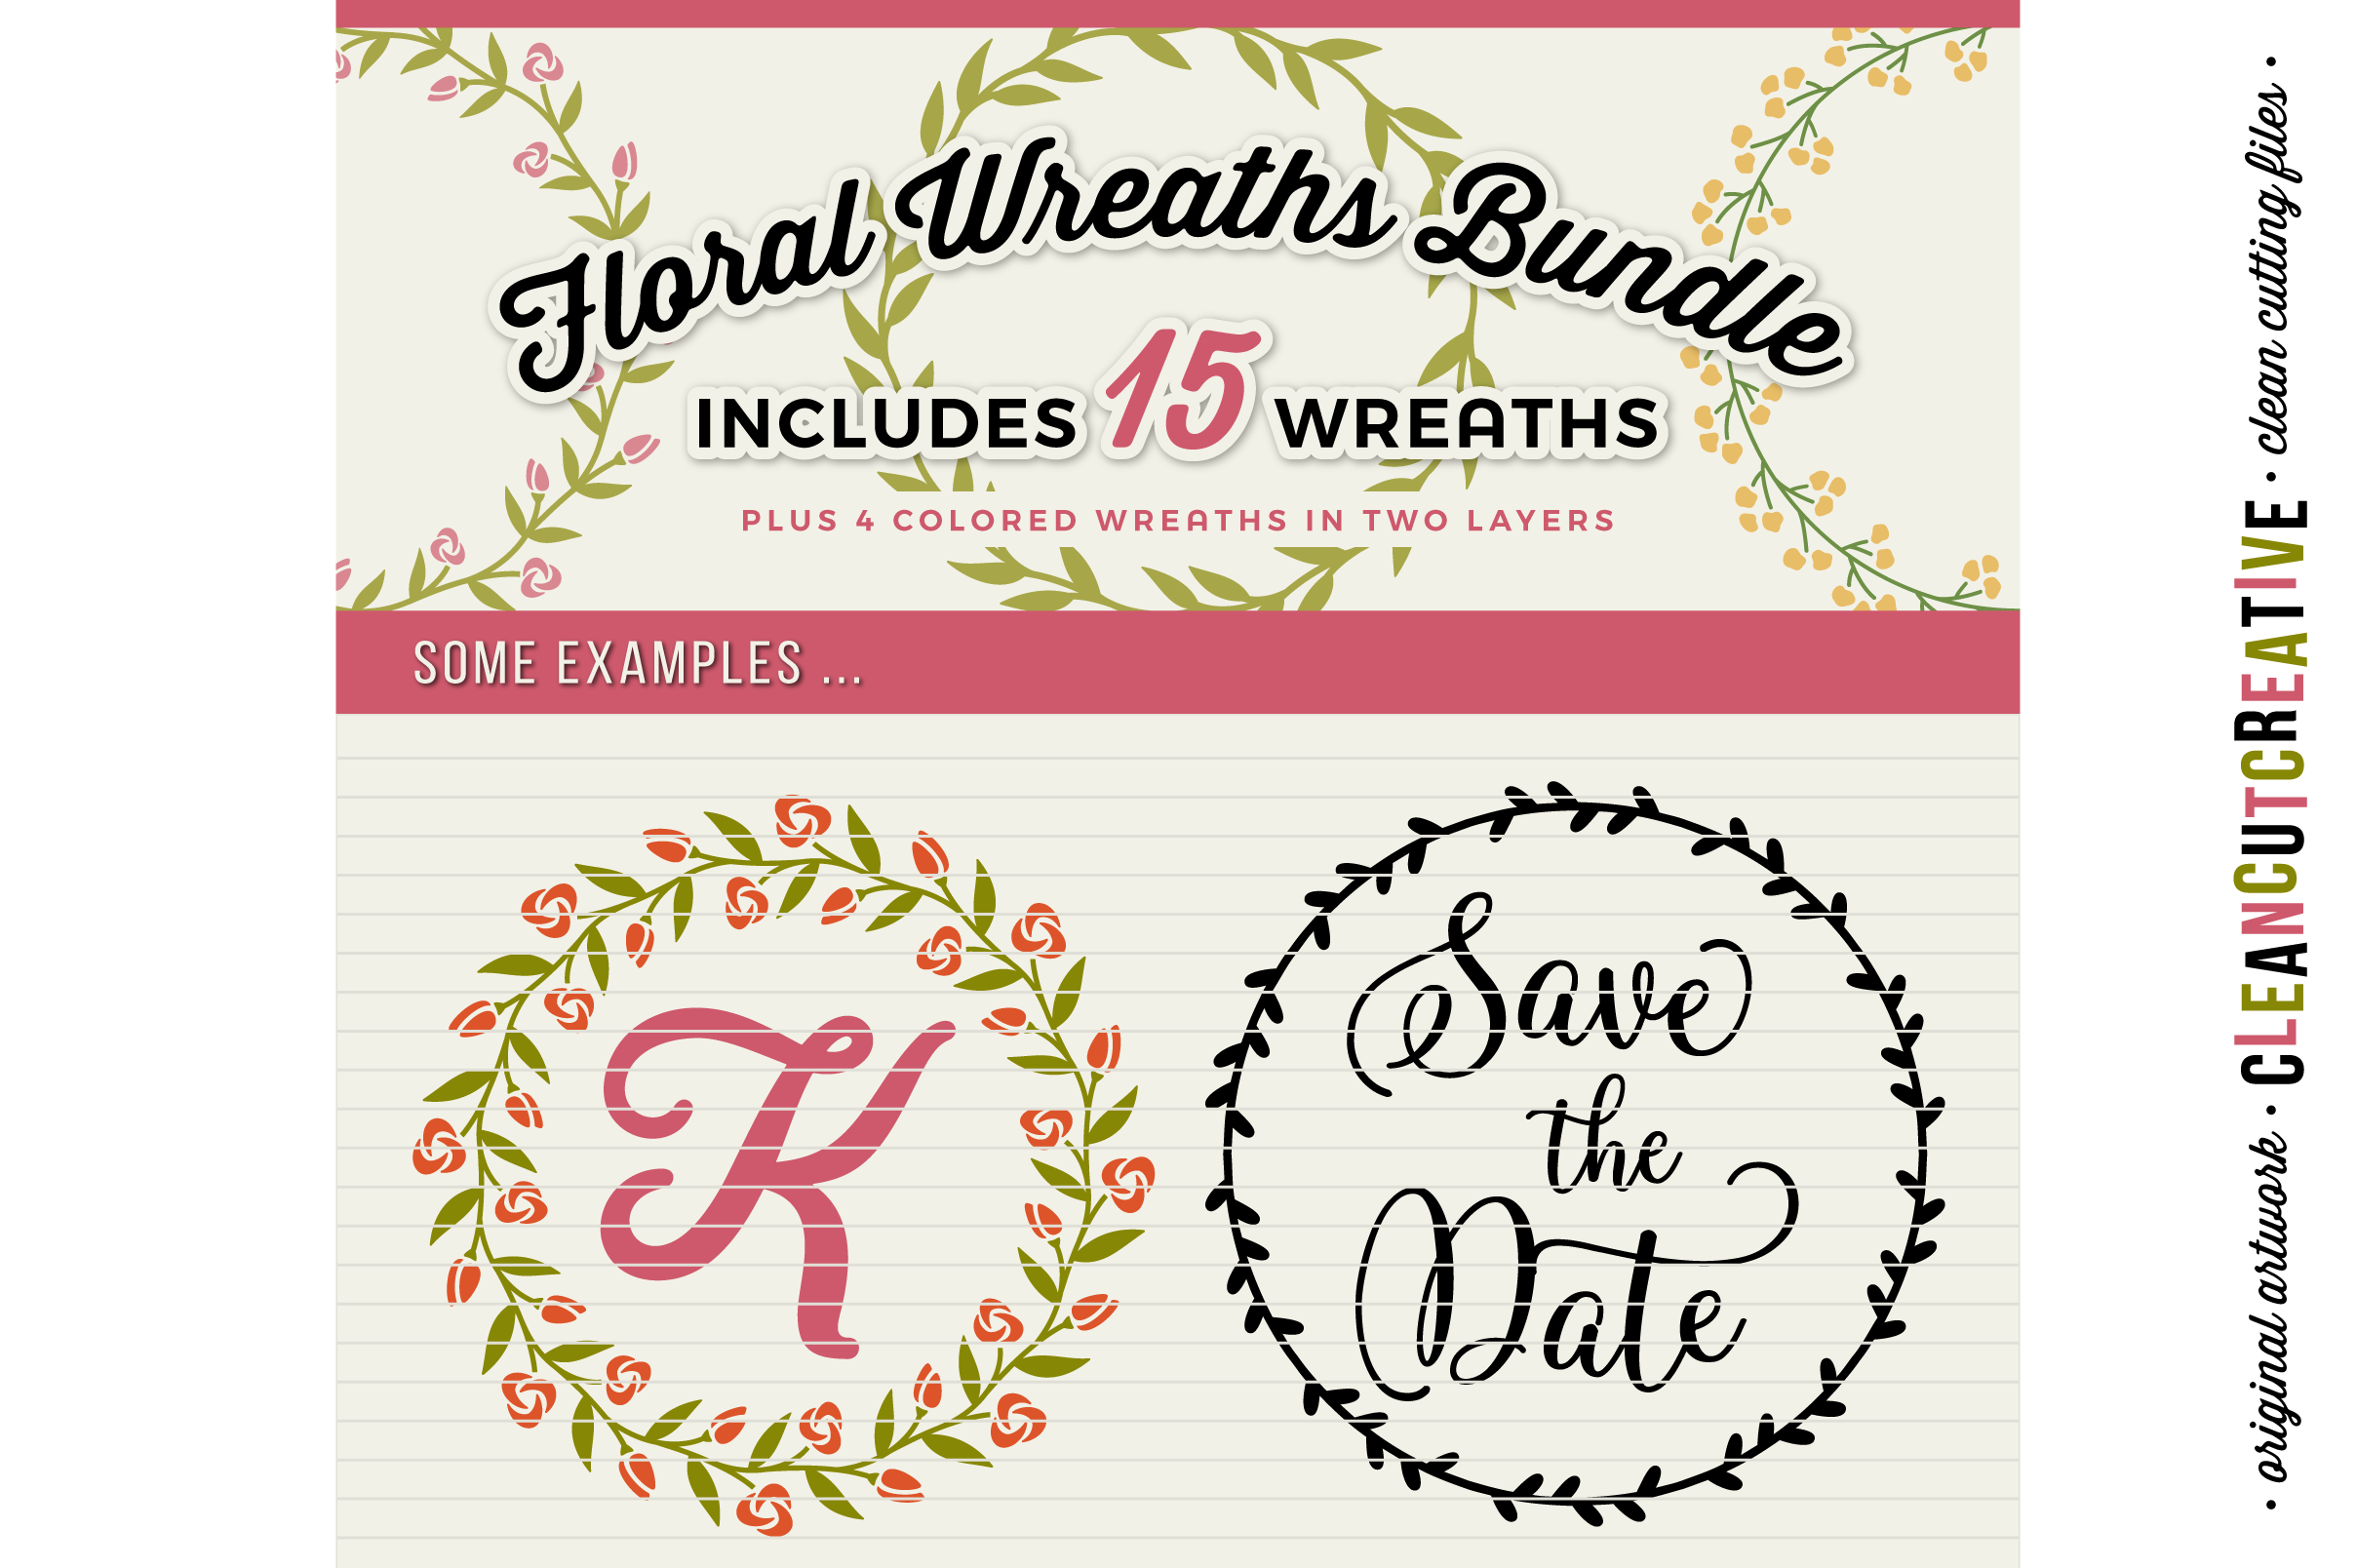 15 svg FLORAL WREATHS floral leaf circleframes - SVG DXF EPS PNG - for Cricut and Silhouette Cameo - clean cutting digital files example image 5